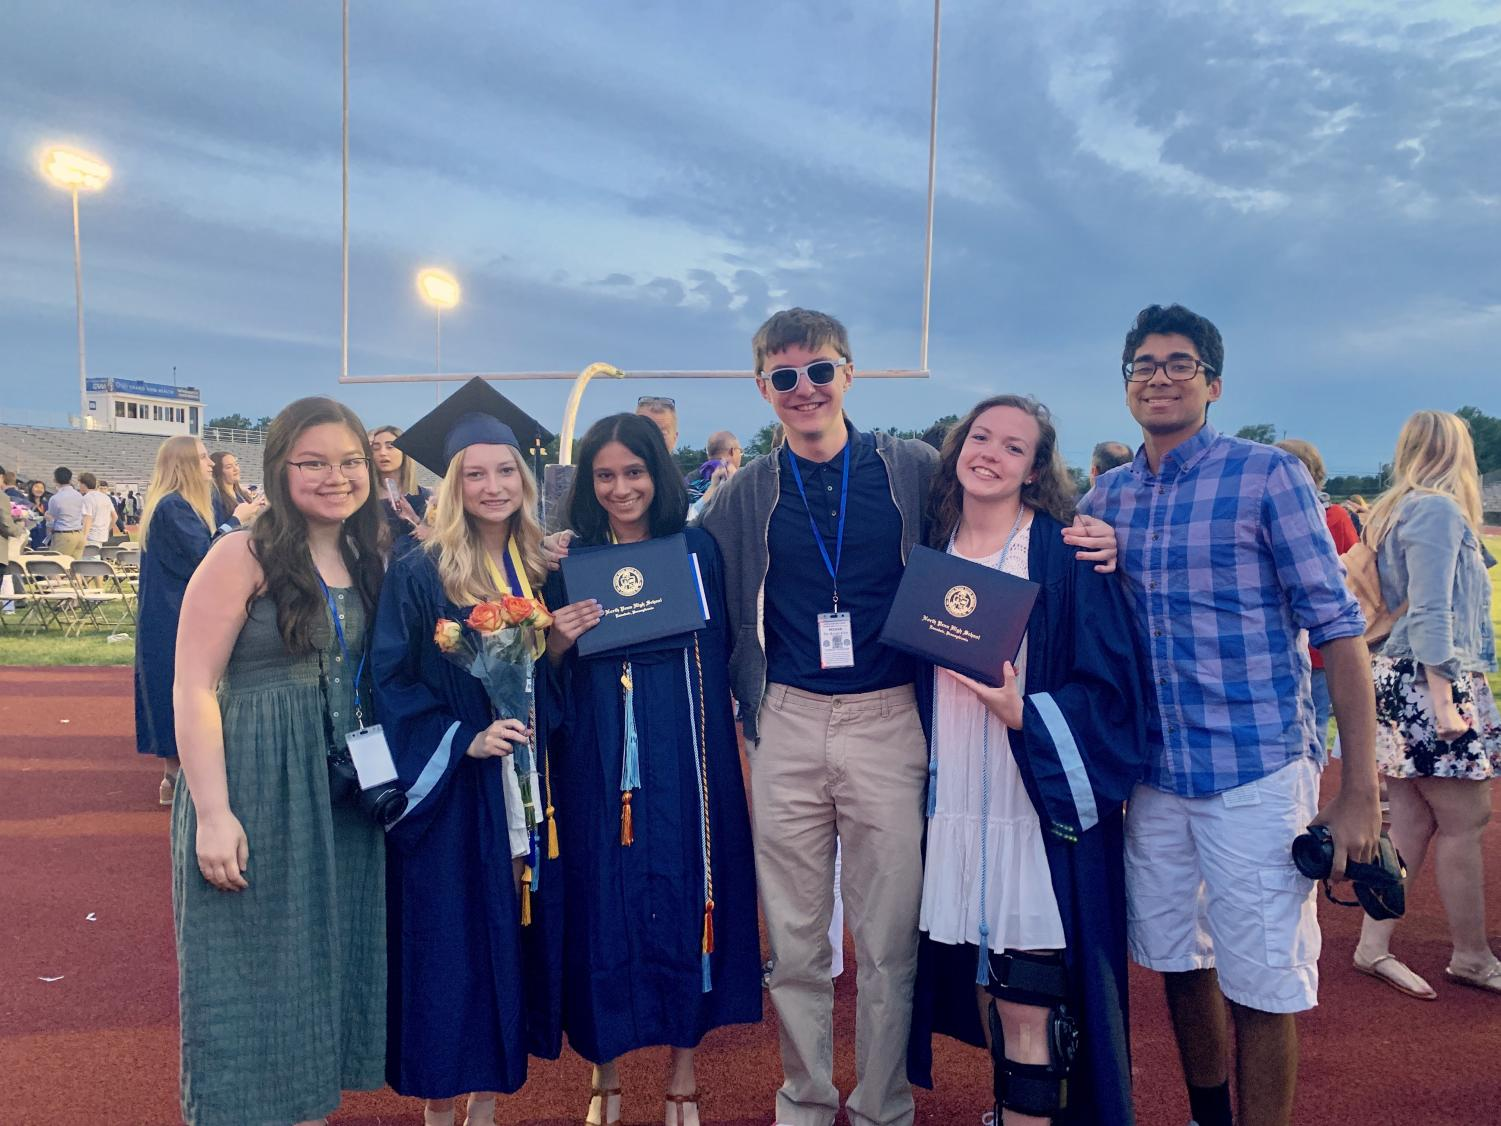 Some of the staff of The Knight Crier pause for a photo after the NPHS 2019 Commencement ceremony. Picture from L-R: Hannah Nguyen (Staff Writer Class of 2021); Allison Lacianca (Editor- Class of 2019); Sameera Rachakonda (Editor-In-Chief, Class of 2019); Connor Niszczak (Staff Writer Class of 2021); Marissa Werner (Editor, Class of 2019); and Prasham Jobanputra (Sports Editor- Class of 2020).